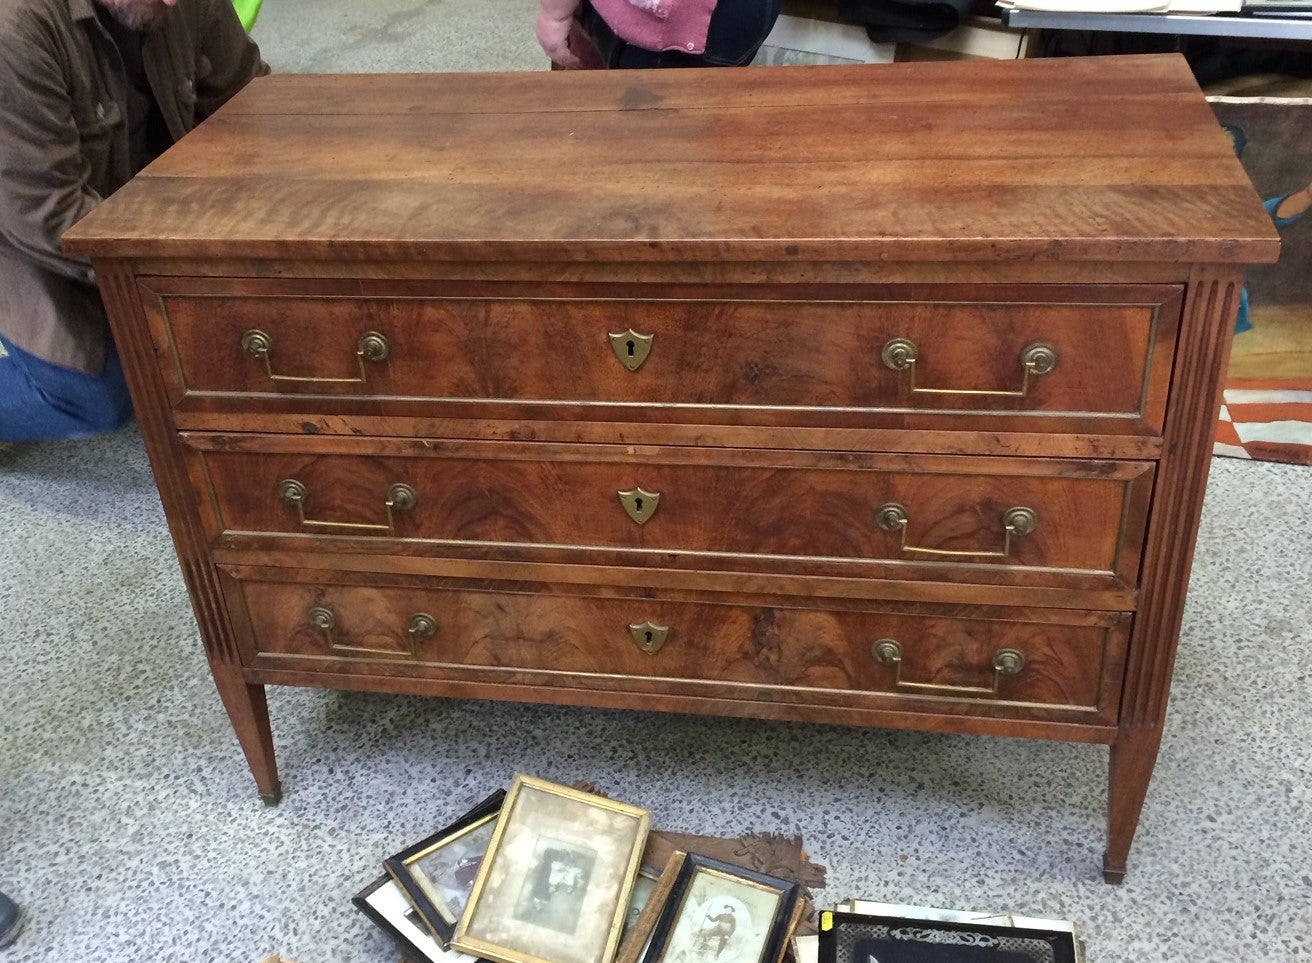 You may be lucky and spot a gorgeous Louis XVI walnut chest, that just needs a little TLC ...